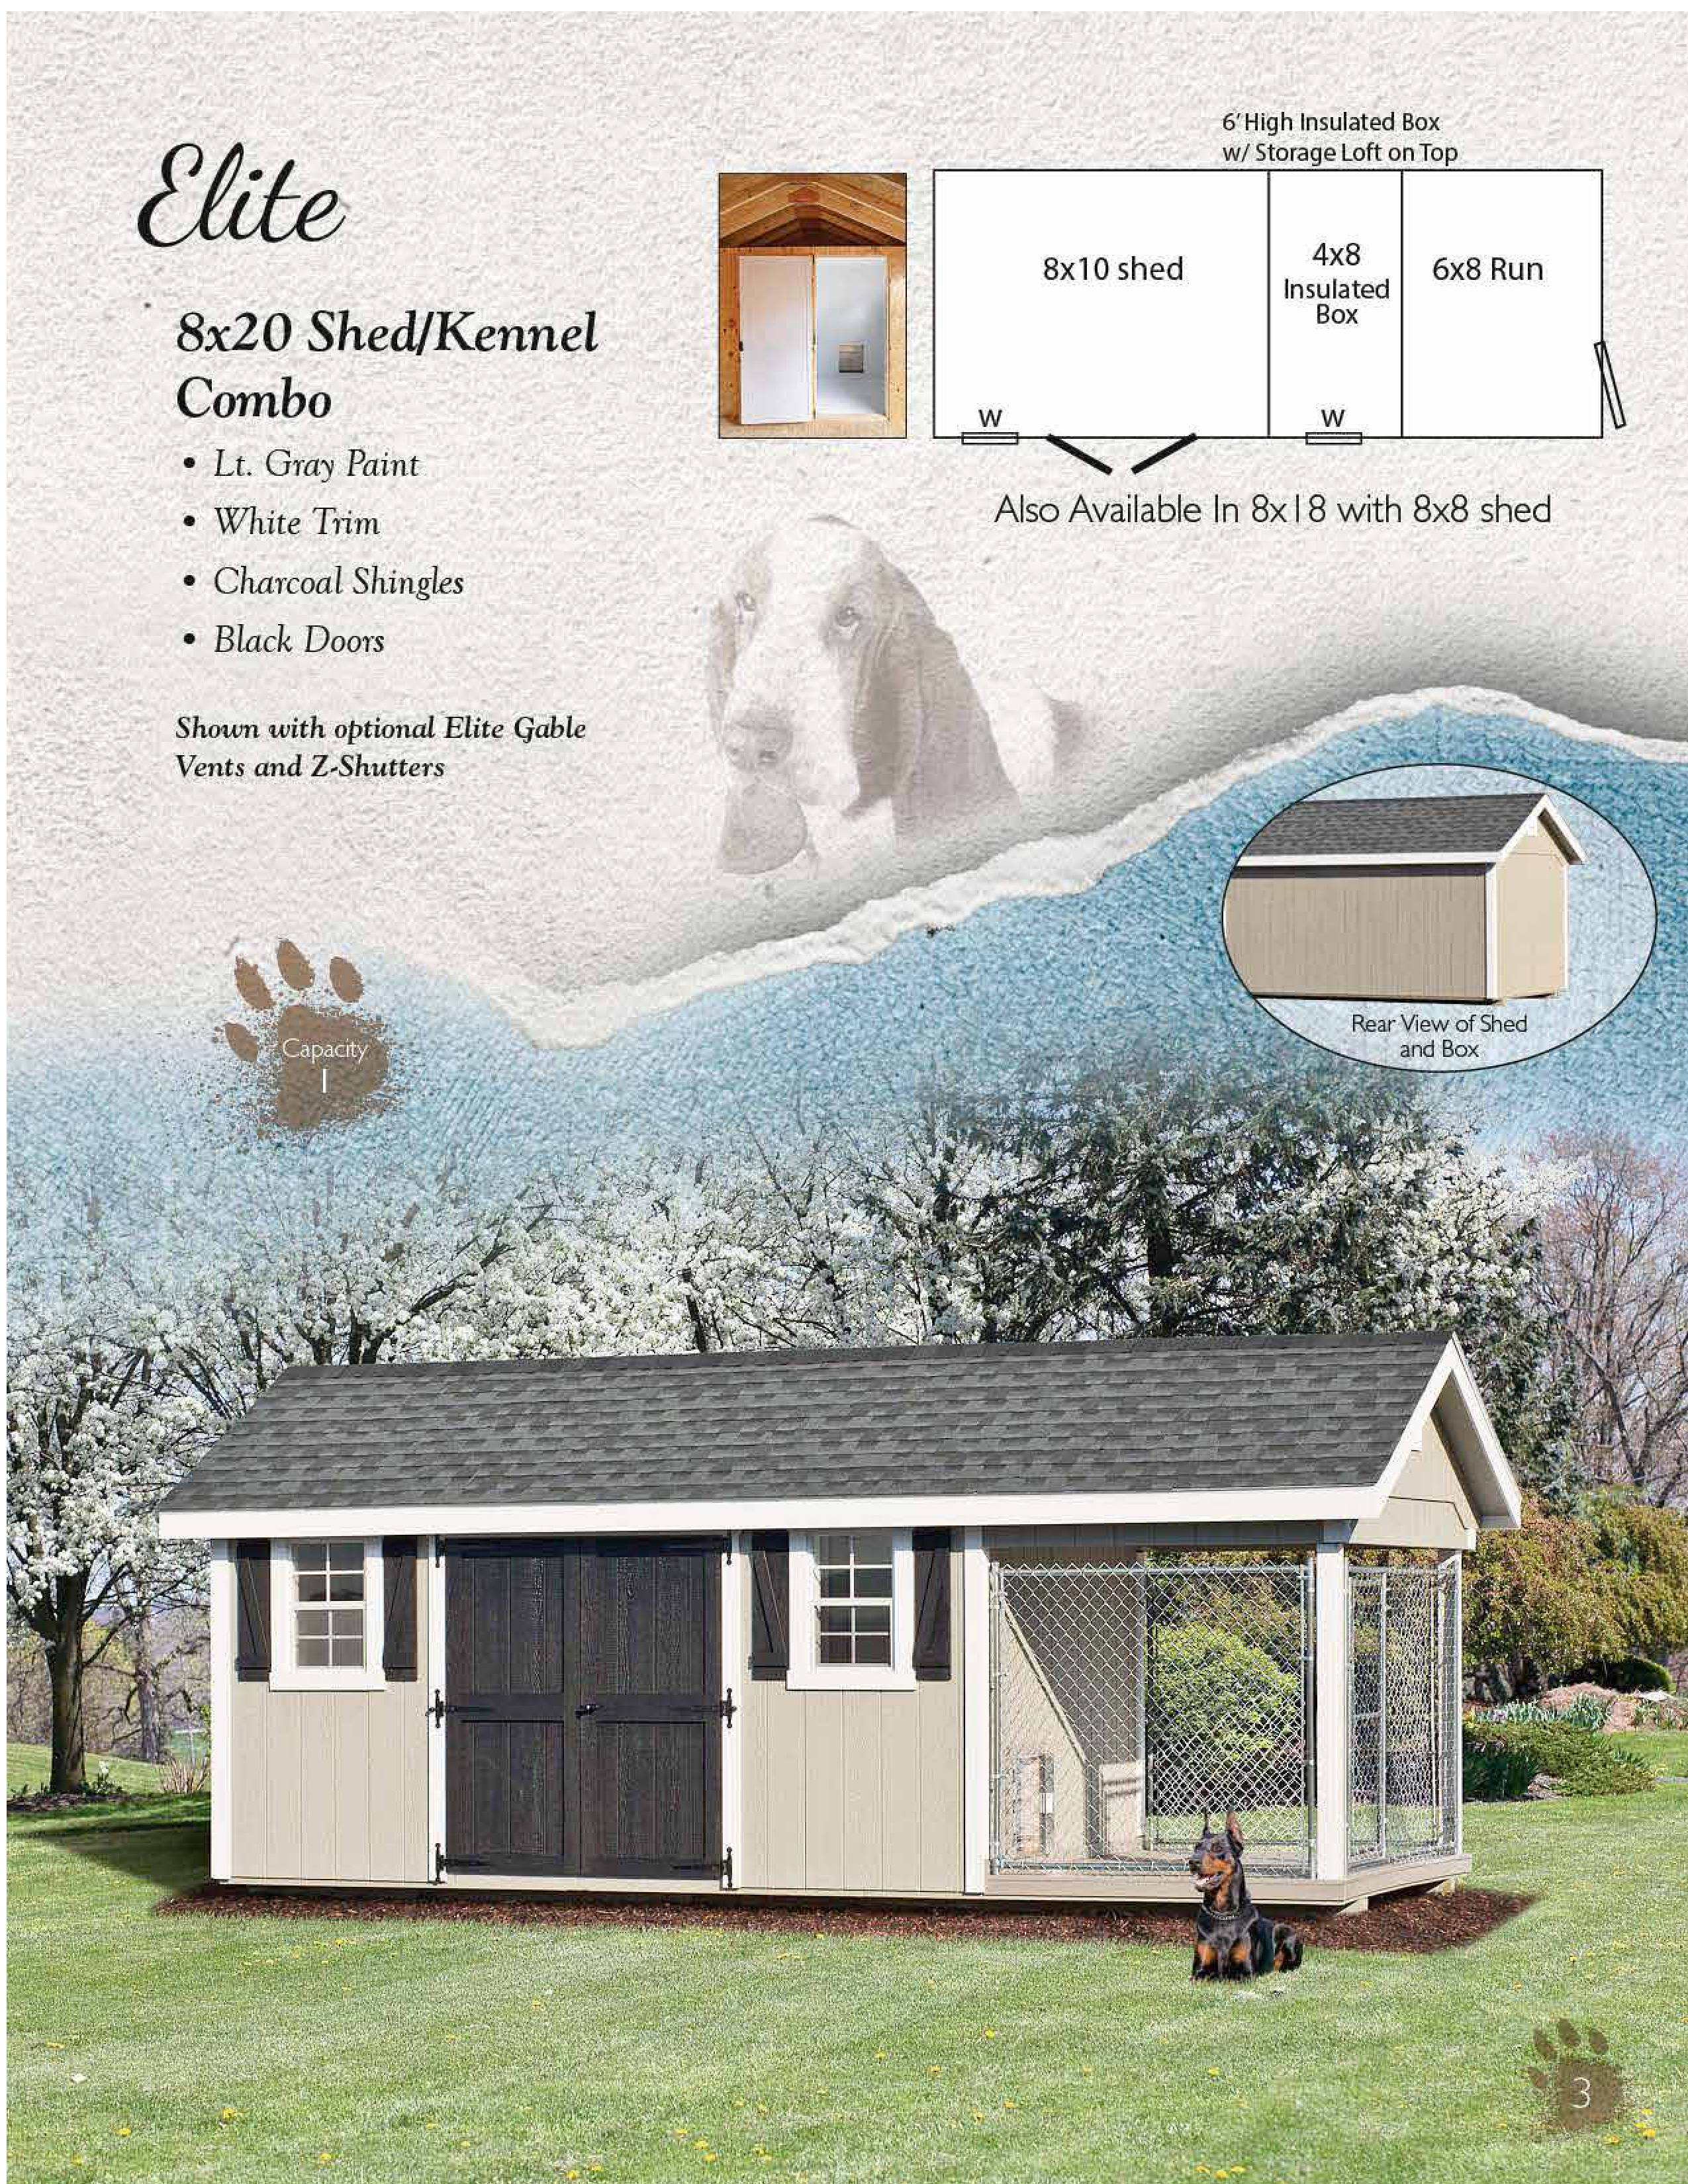 Elite 8x20 Shed Combo Dura-Temp